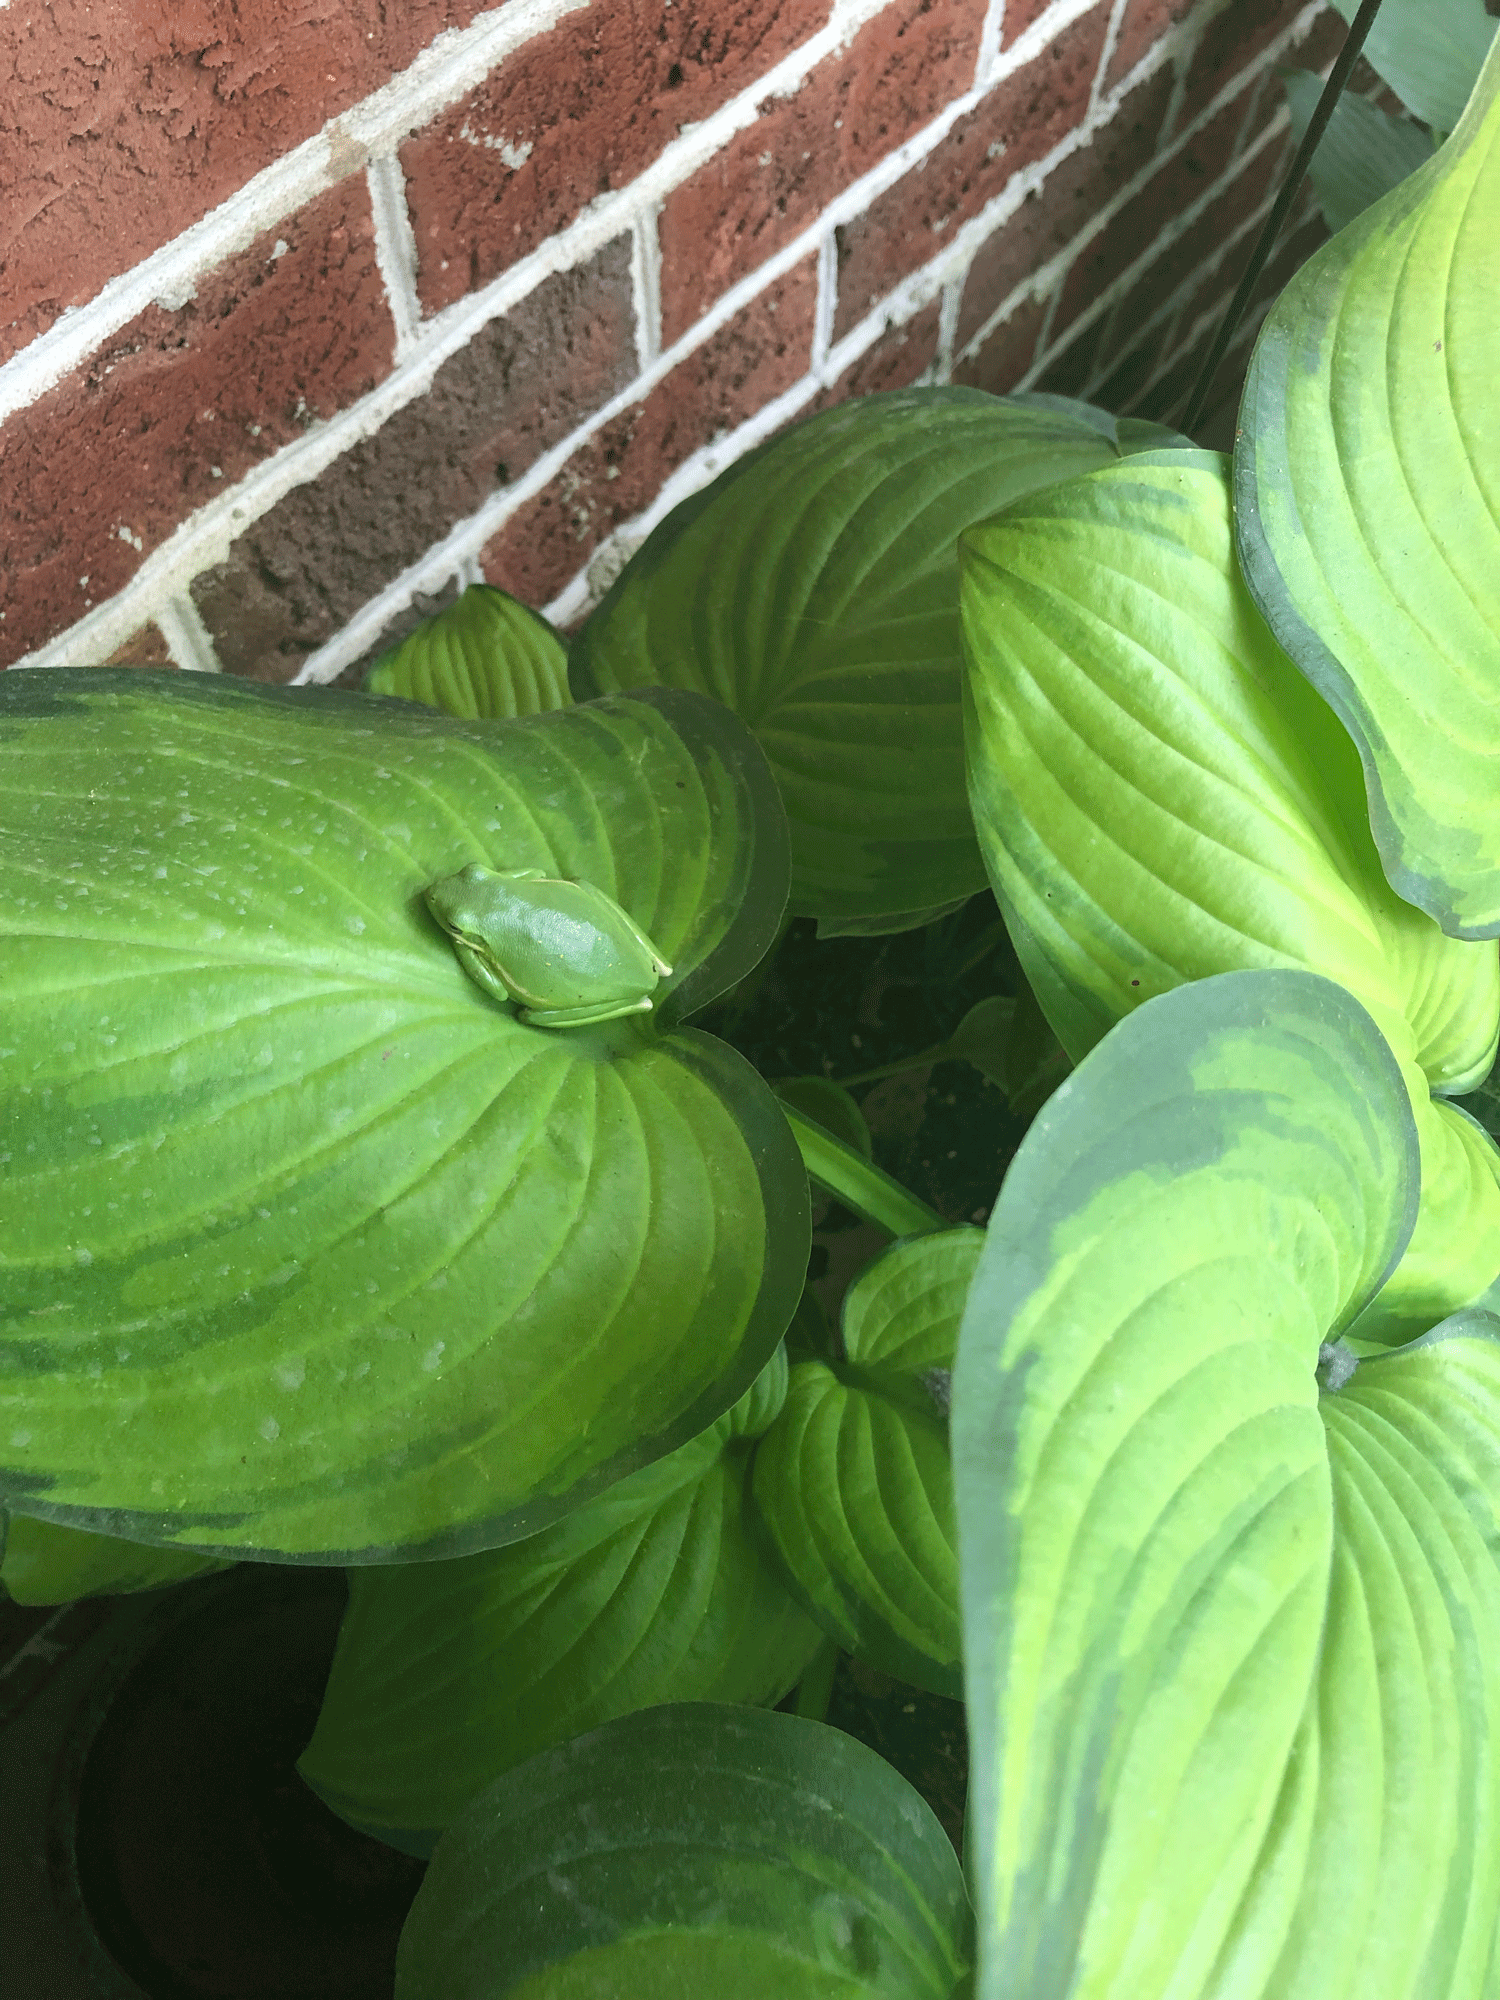 Leaves from container garden plant